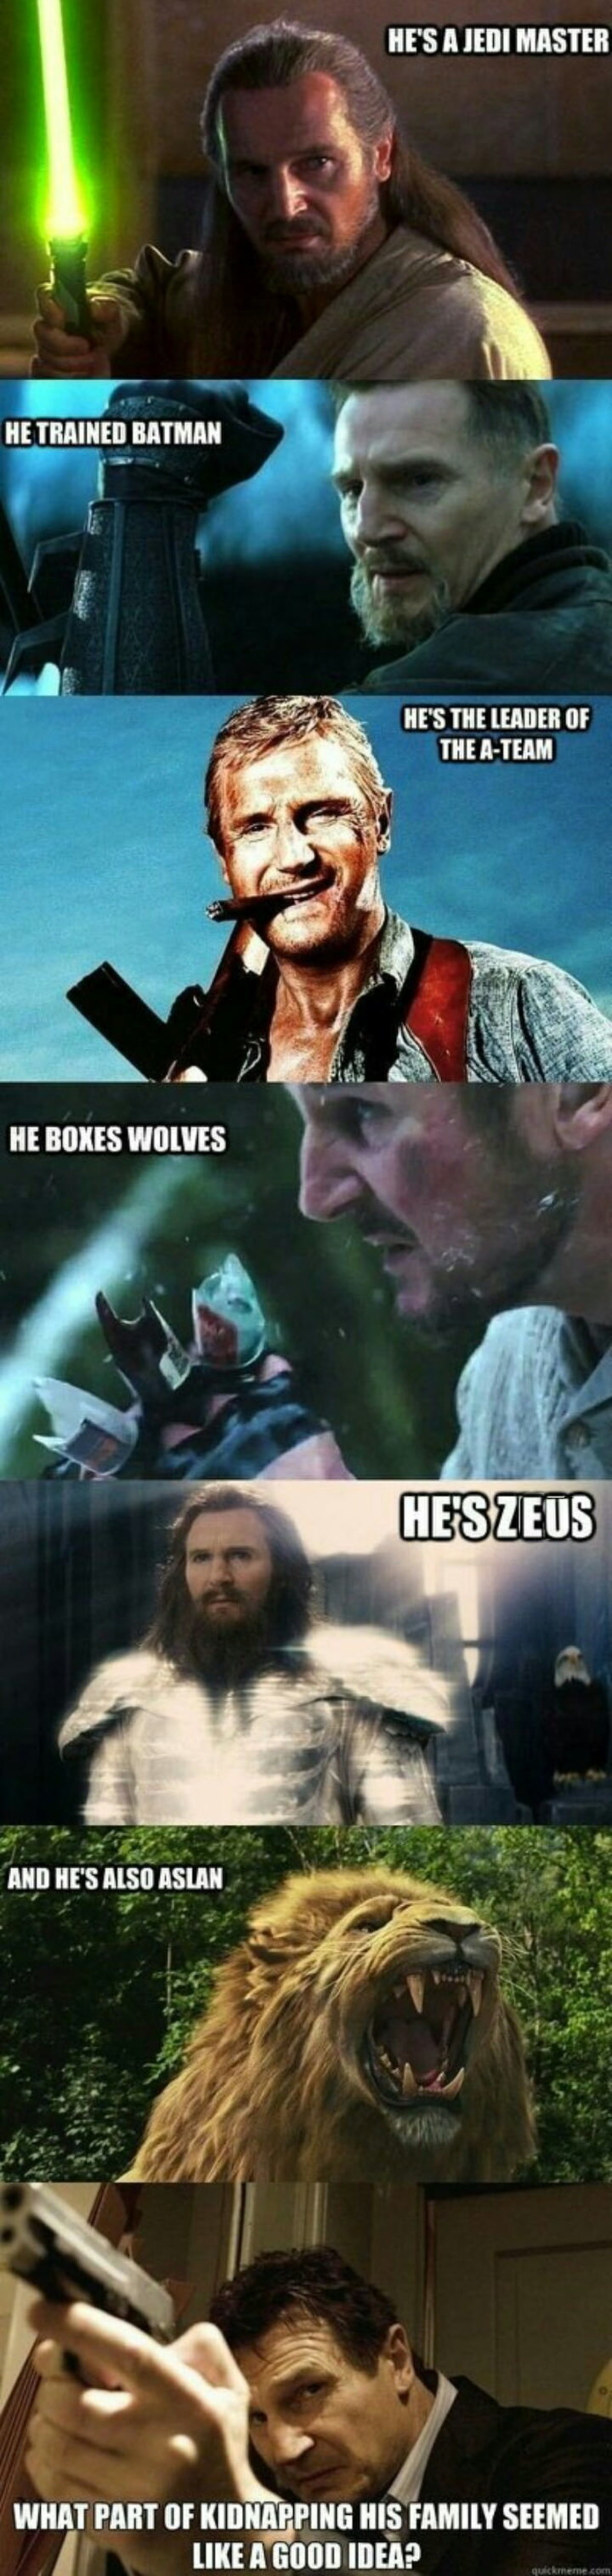 The Neeson. . if q THE ISHAM WHAT pm or . MS SEEM!!! I um new mus». He's your dad in Fallout 3.